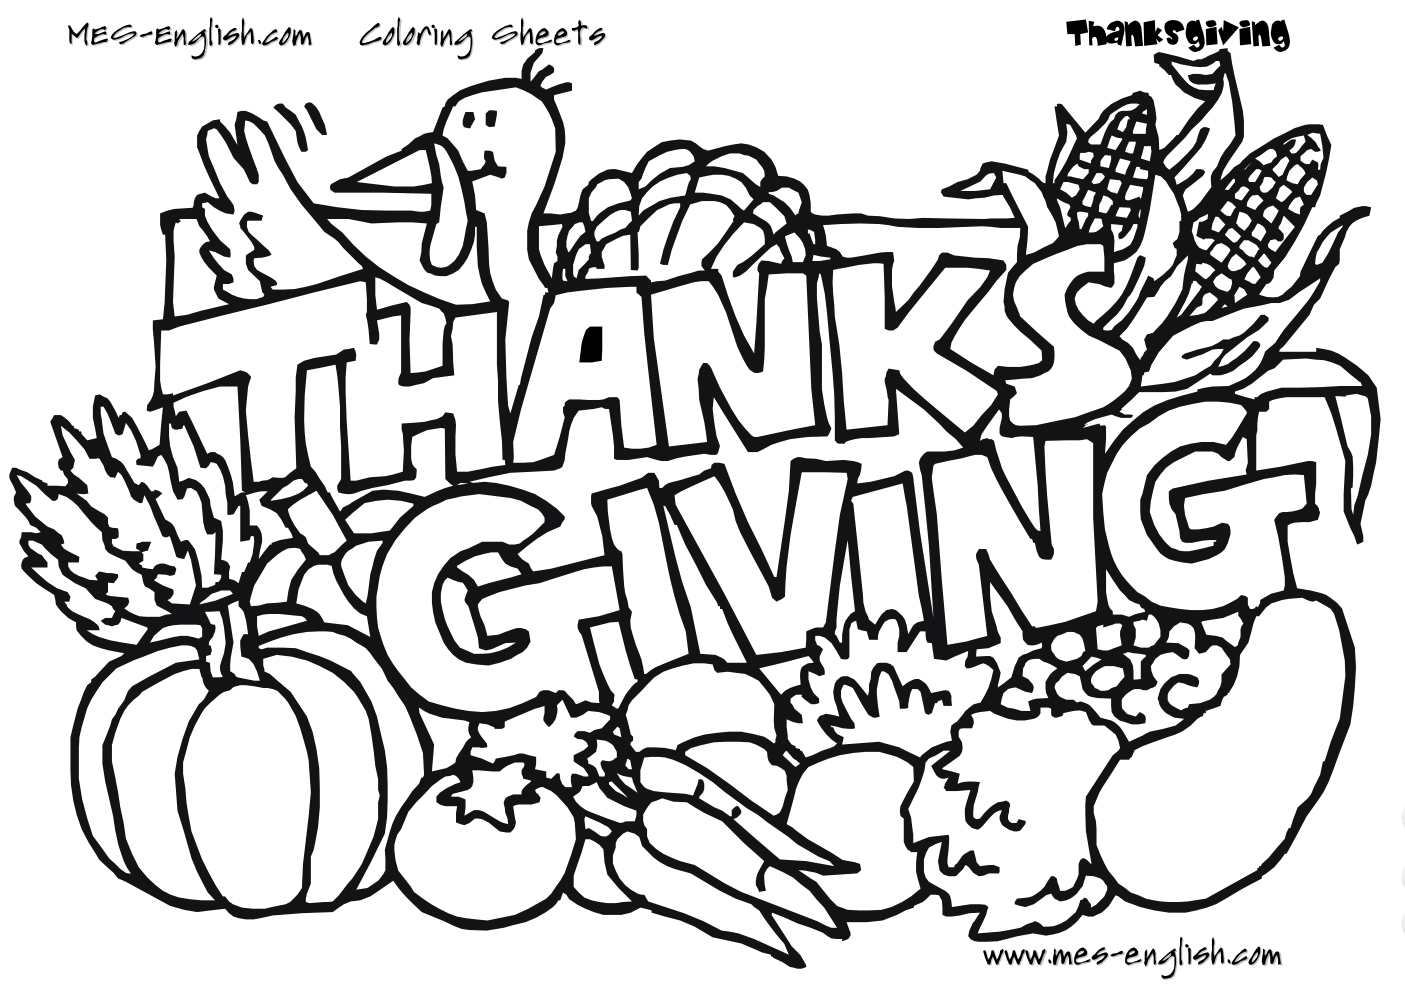 217 thanksgiving coloring pages for kids - Thanksgiving Coloring Books